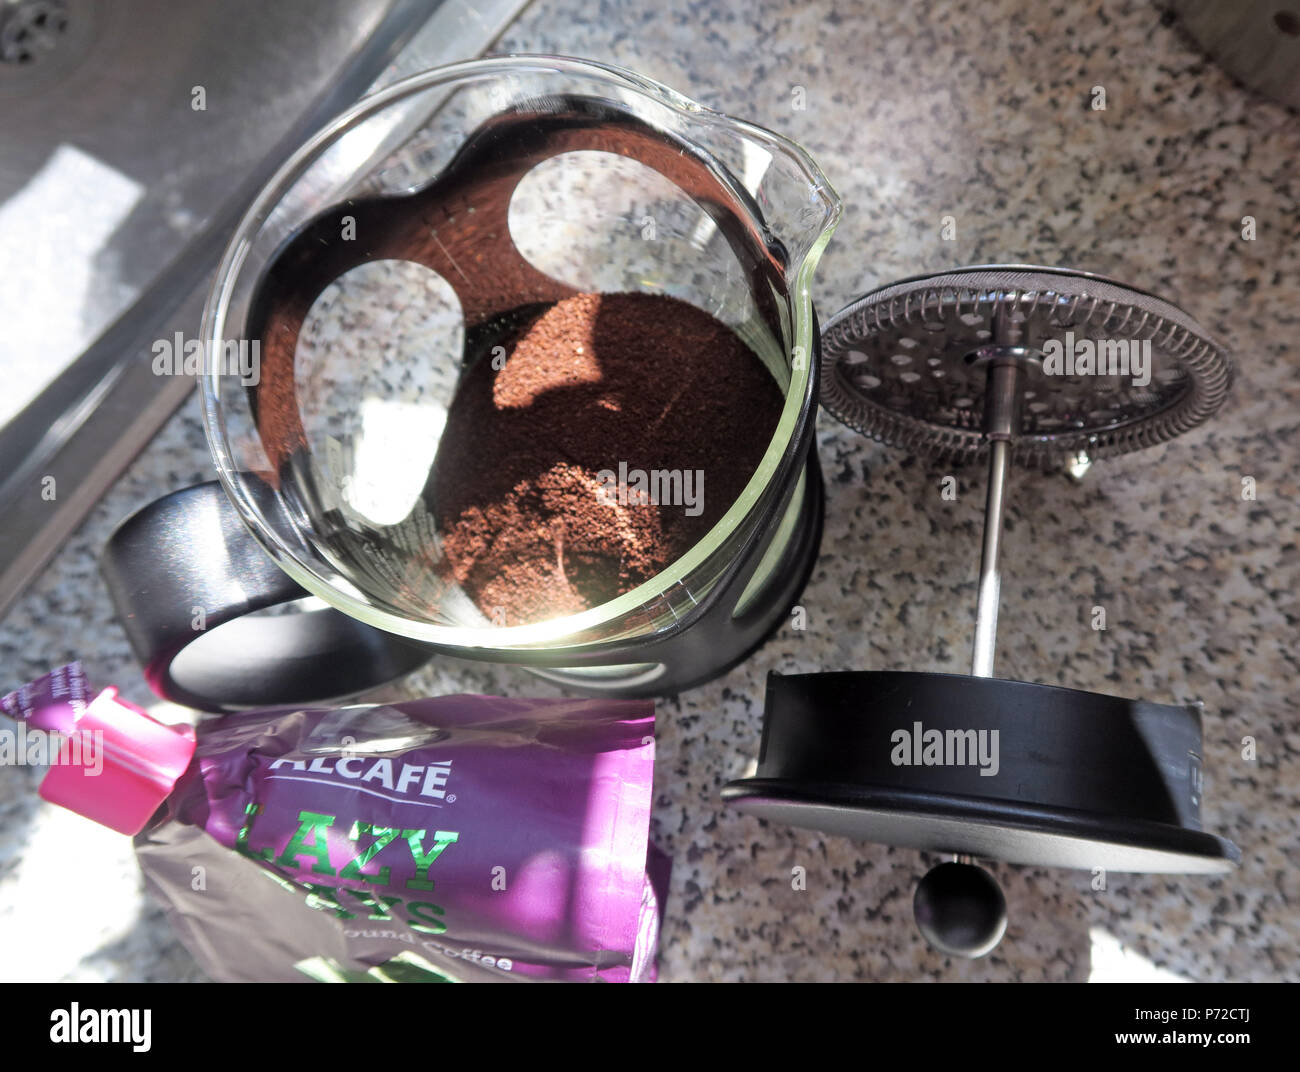 Preparing coffee, using a cafetiere at home, cafetiere coffee Stock Photo